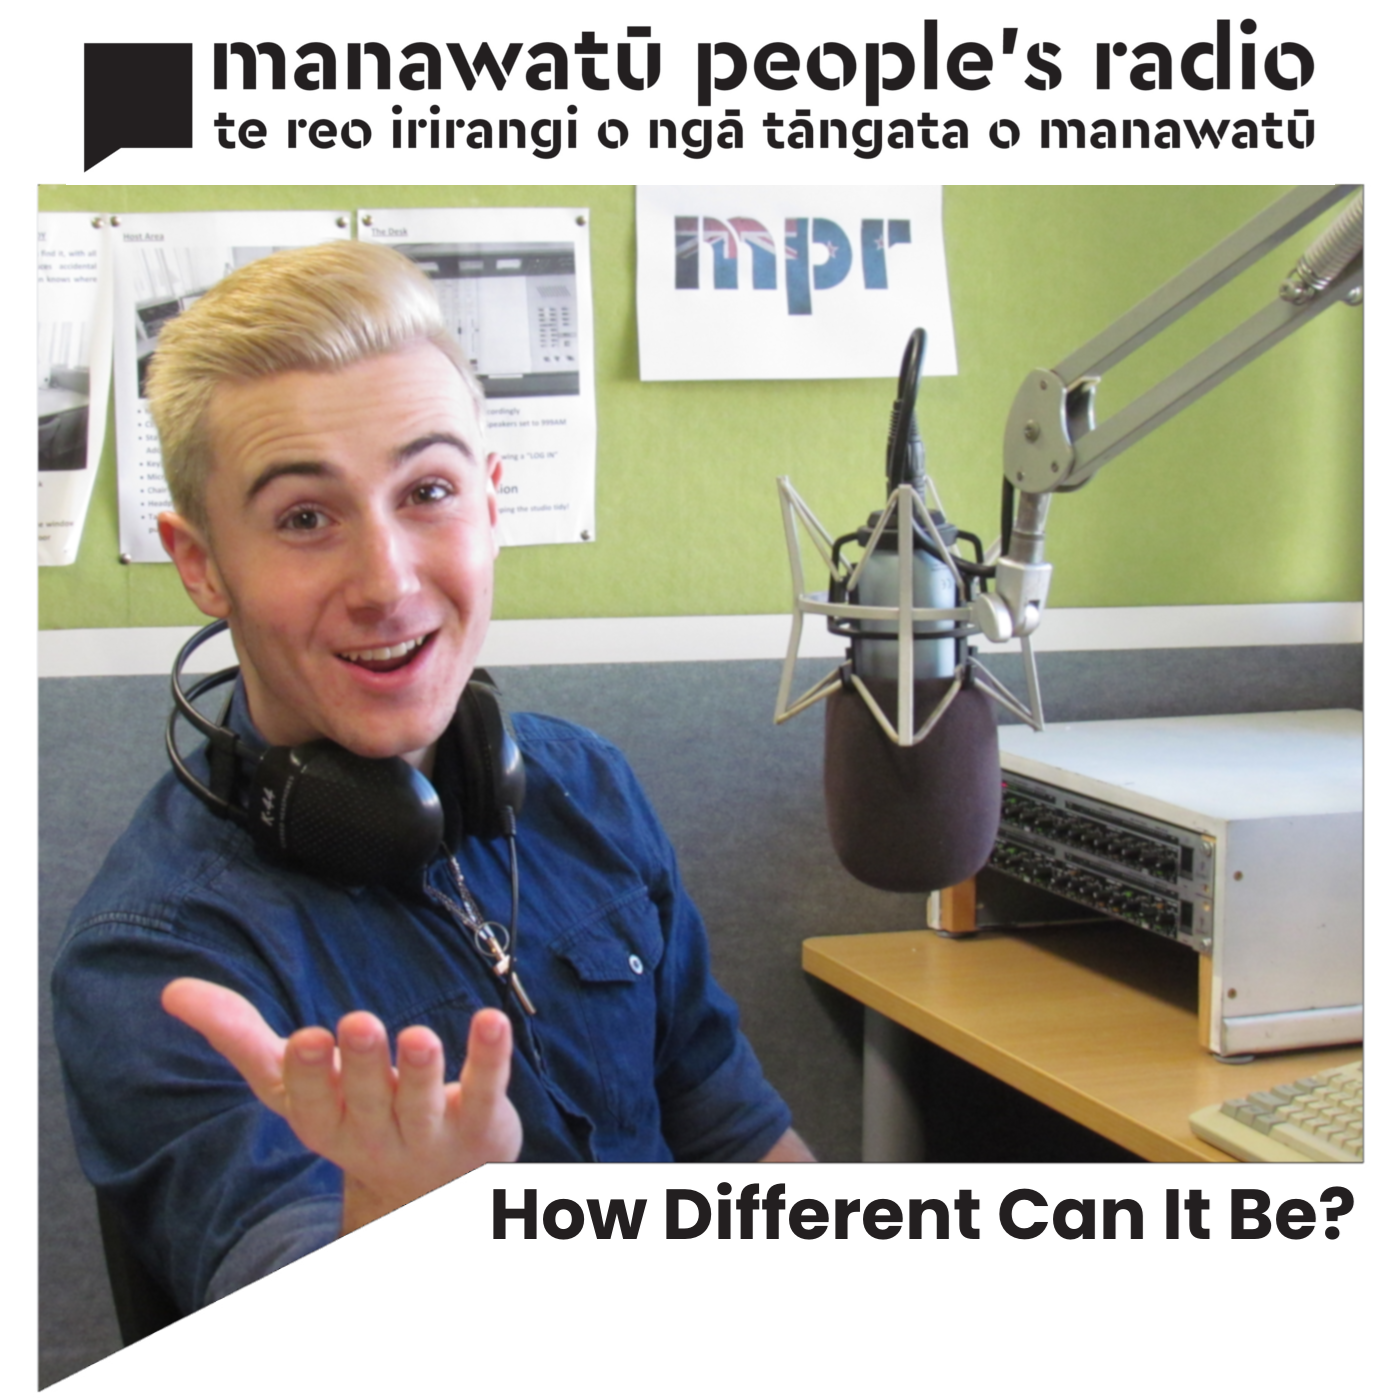 https://cdn.accessradio.org/StationFolder/manawatu/Images/MPRHDCIB.png